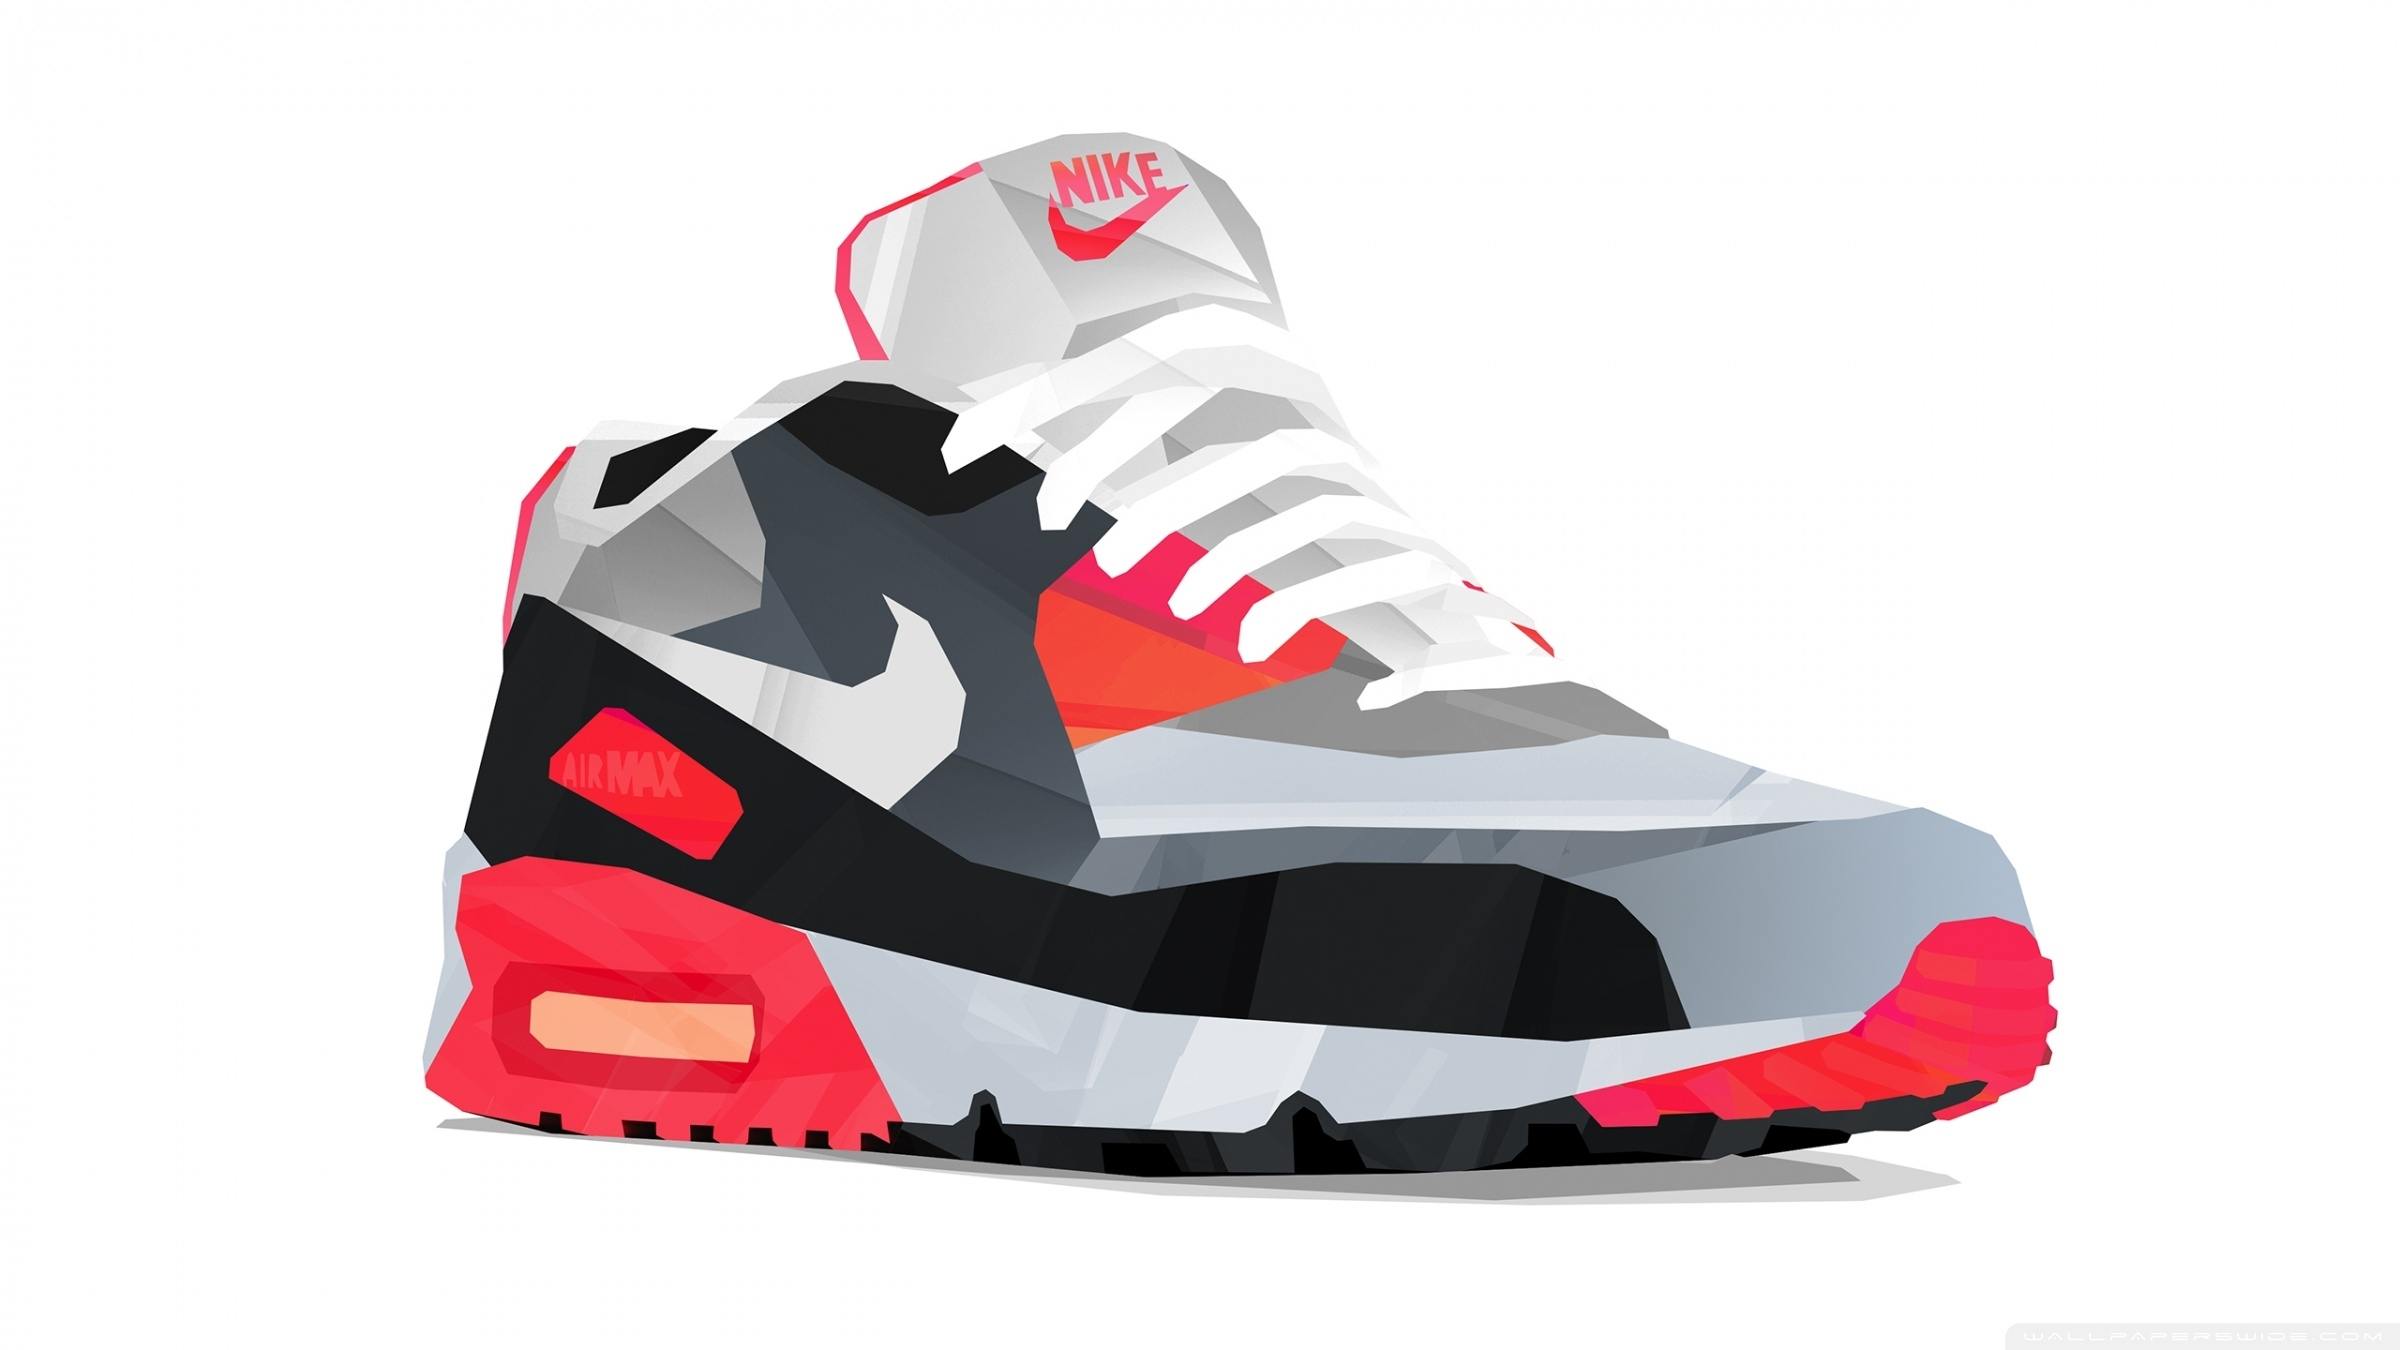 nike air max 90 ❤ 4k hd desktop wallpaper for 4k ultra hd tv • wide